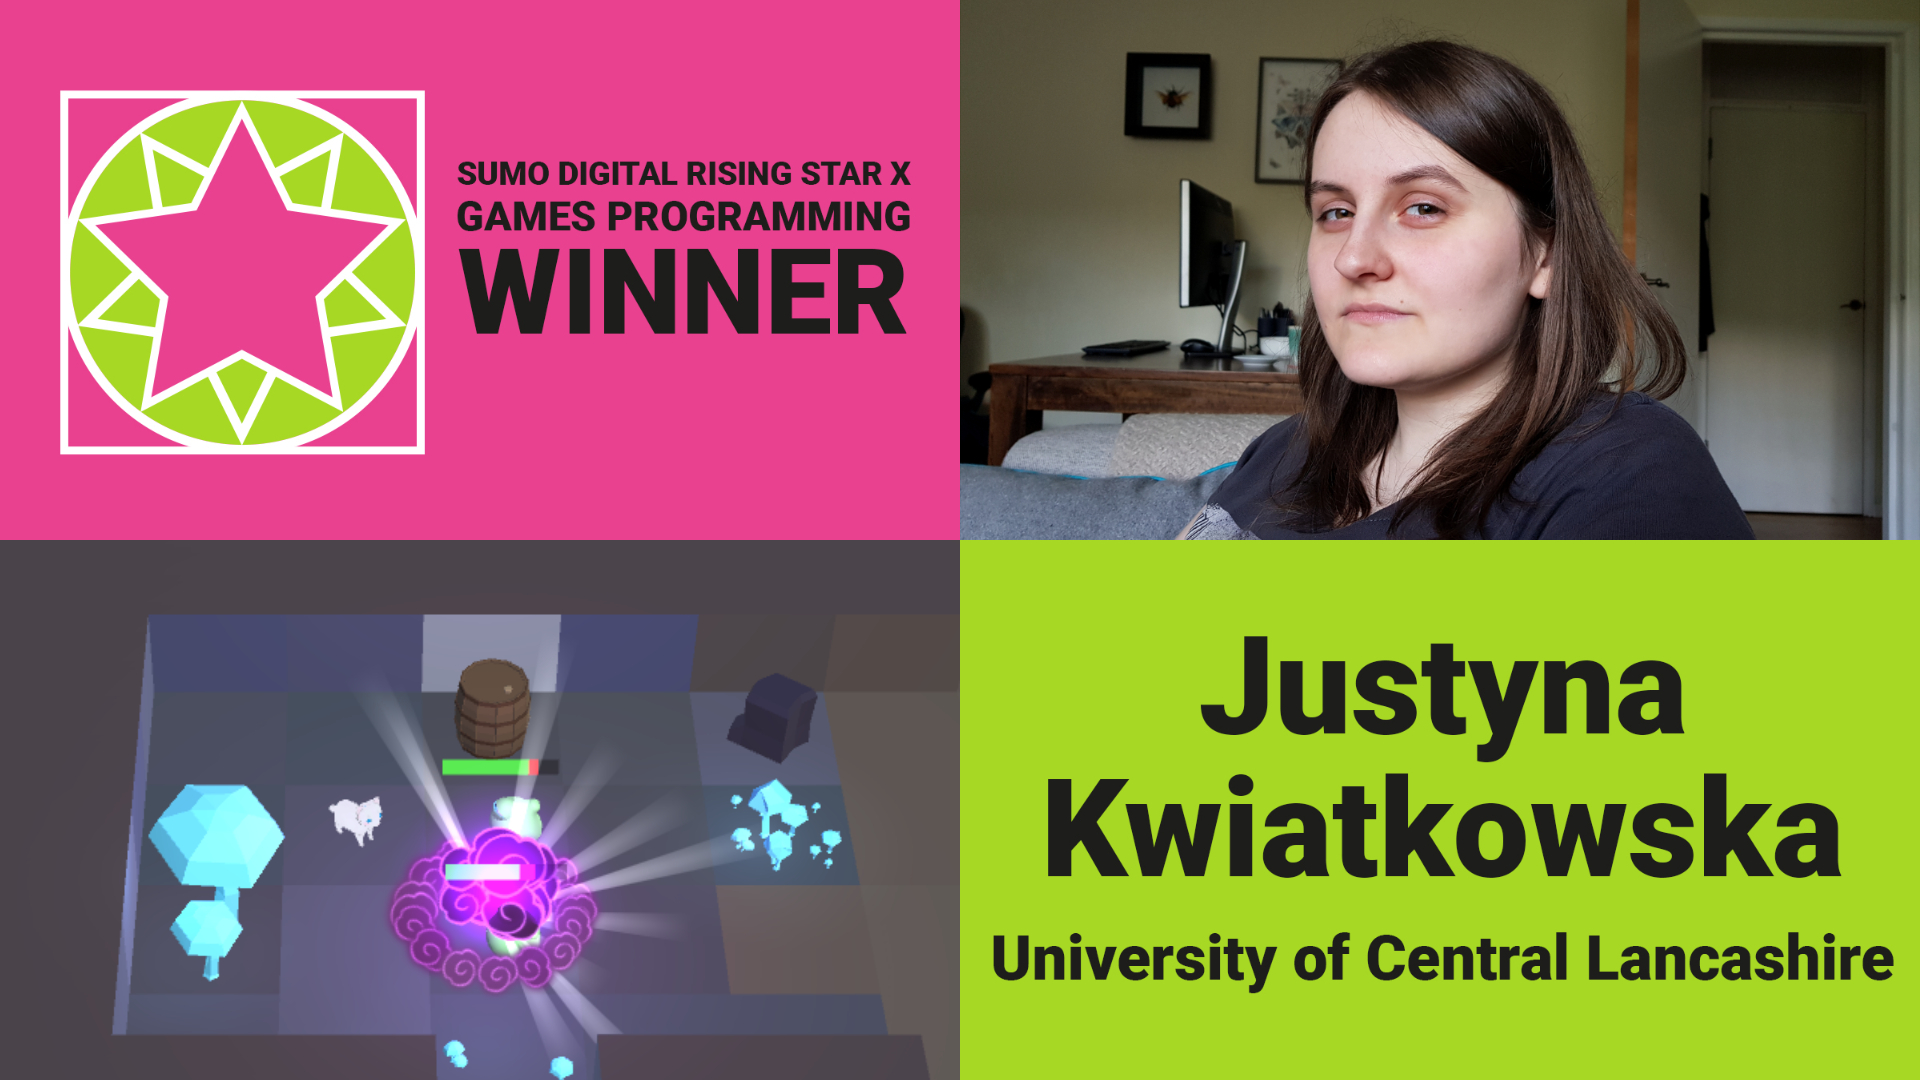 Justyna Kwiatkowska- Sumo Digital Rising Star Winner Games Programming